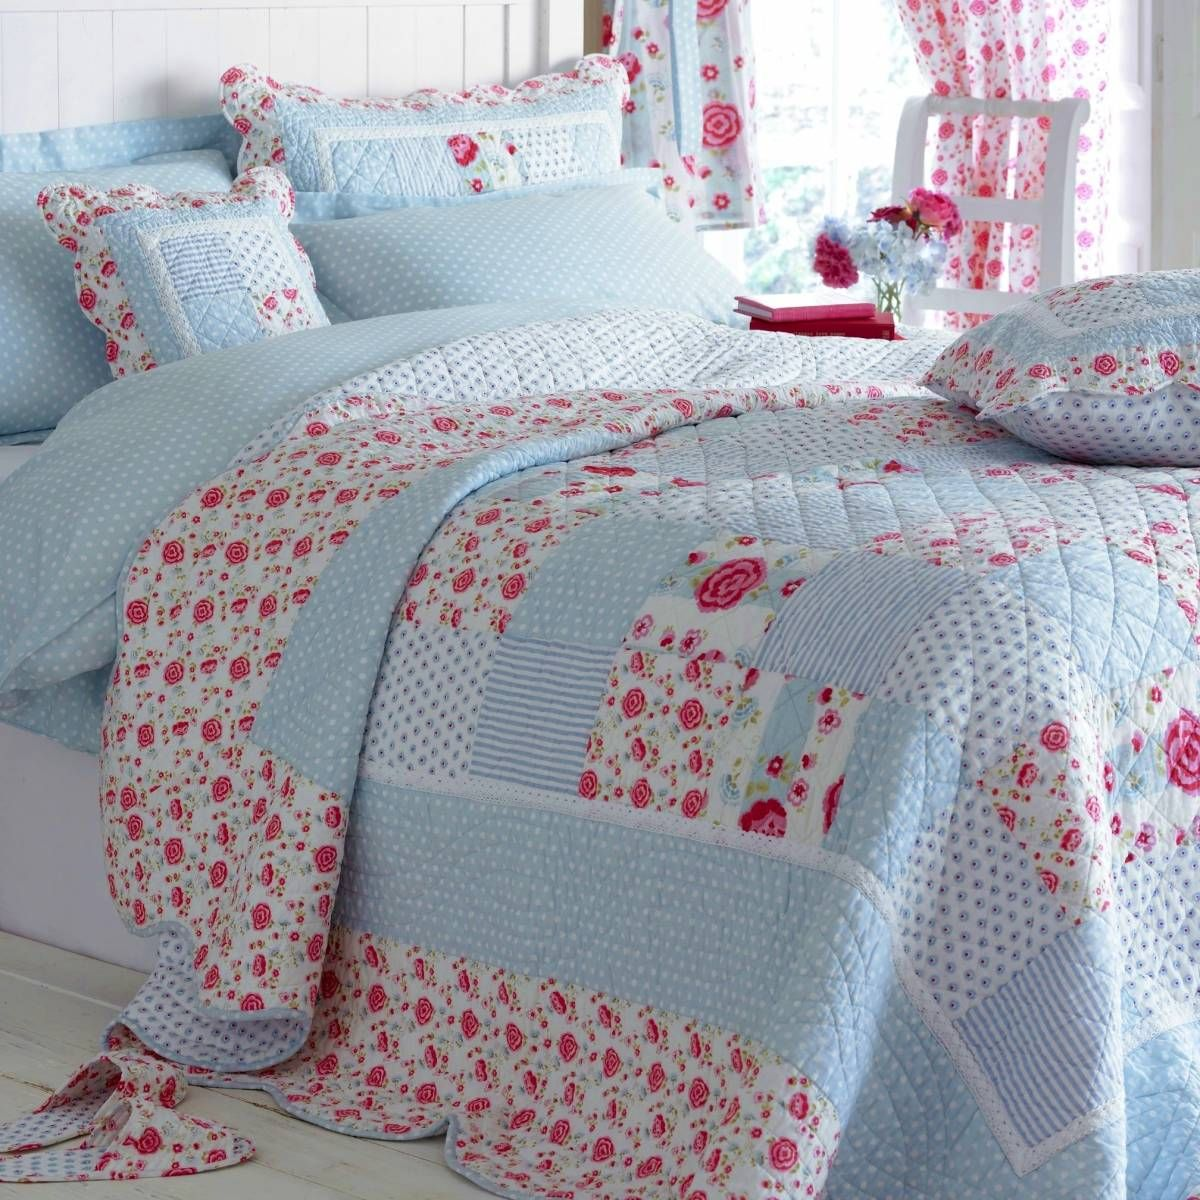 Patchwork Tagesdecke Quilts Home Childrens Girls Bedding Catherine